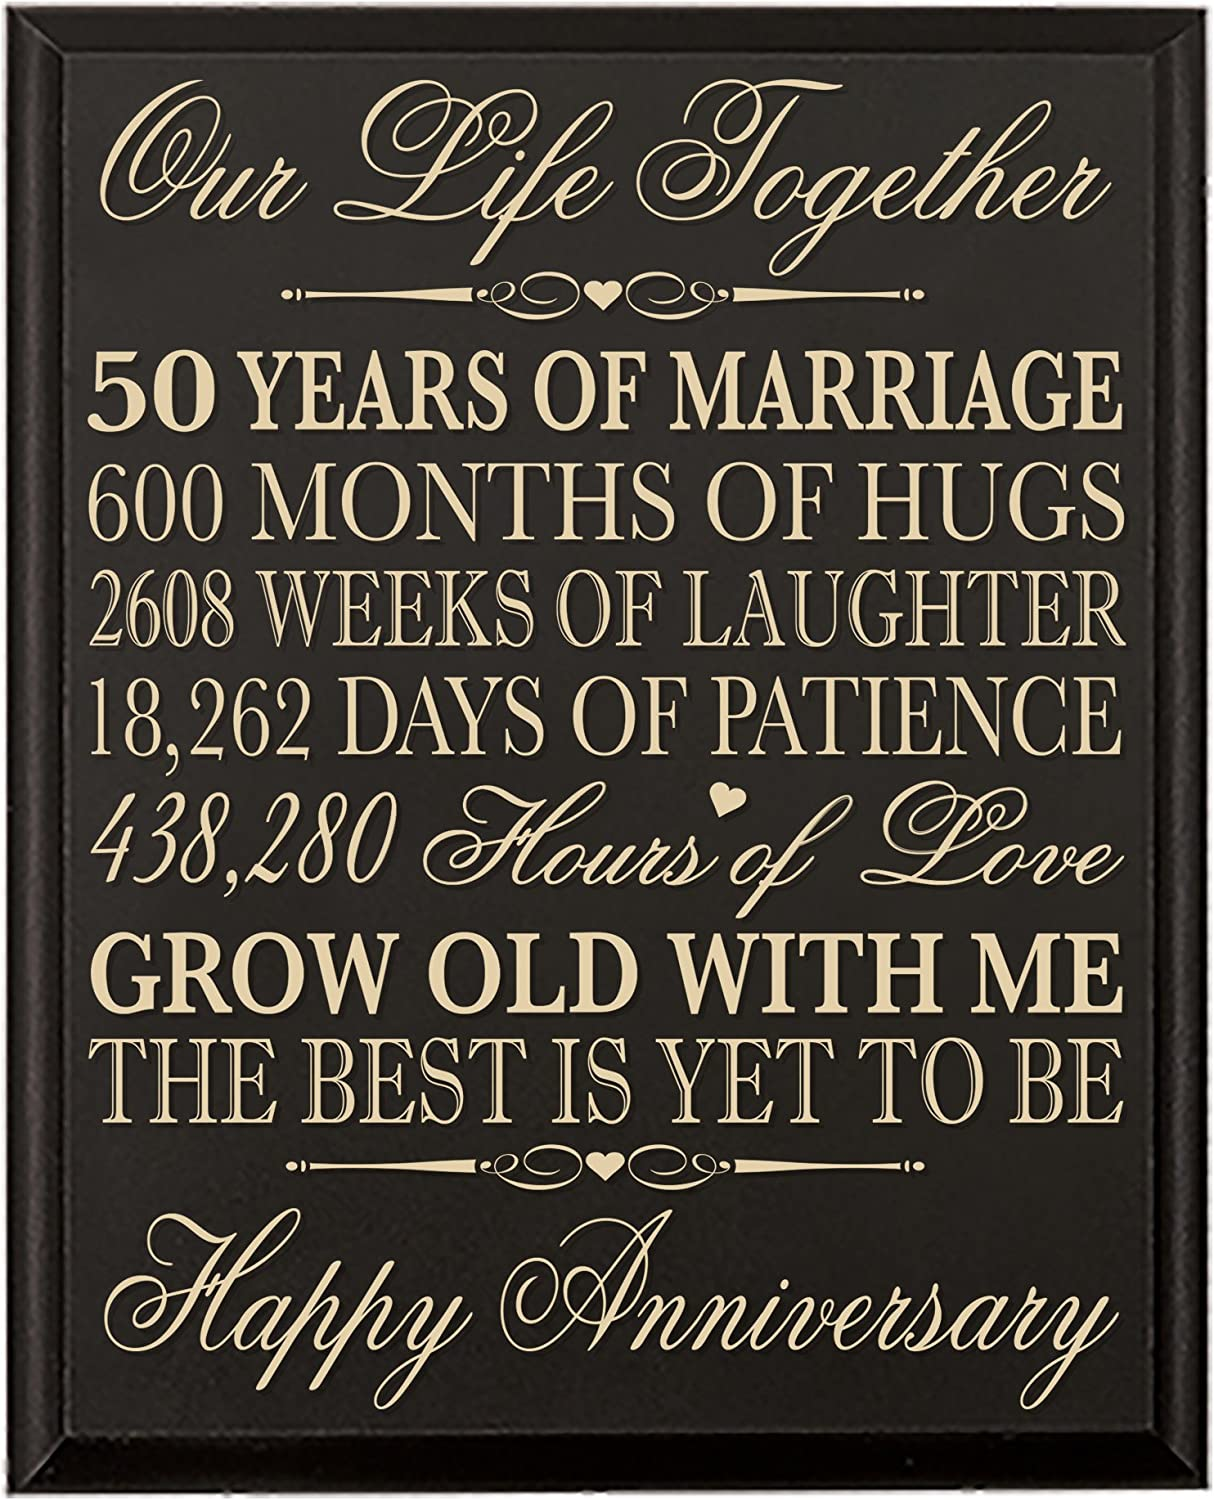 LifeSong Milestones 50th Wedding Anniversary Wall Plaque Gifts for Couple, 50th for Her,50th Wedding for Him 12 W X 15  H Wall Plaque (Black)